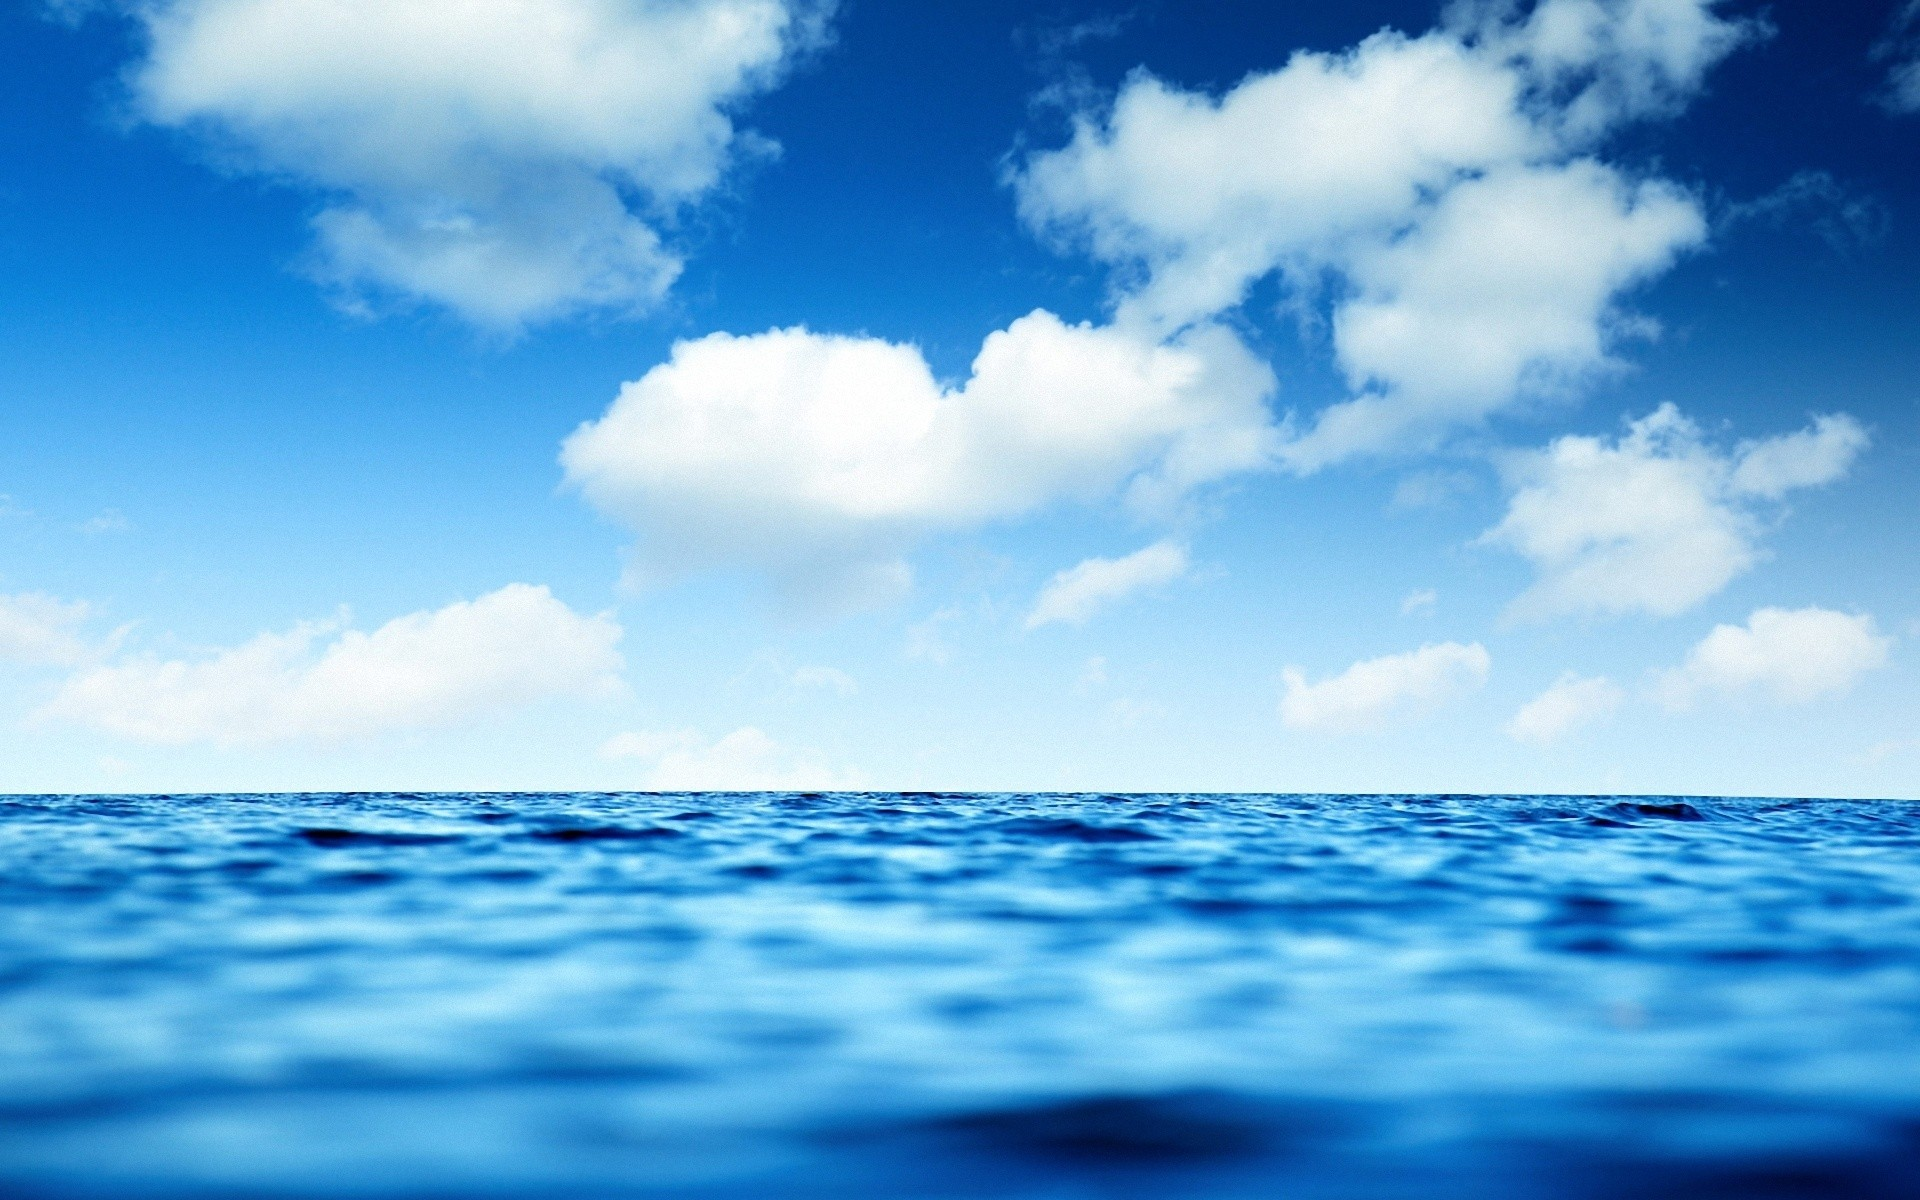 Sky and sea wallpaper | AllWallpaper.in #11345 | PC | en